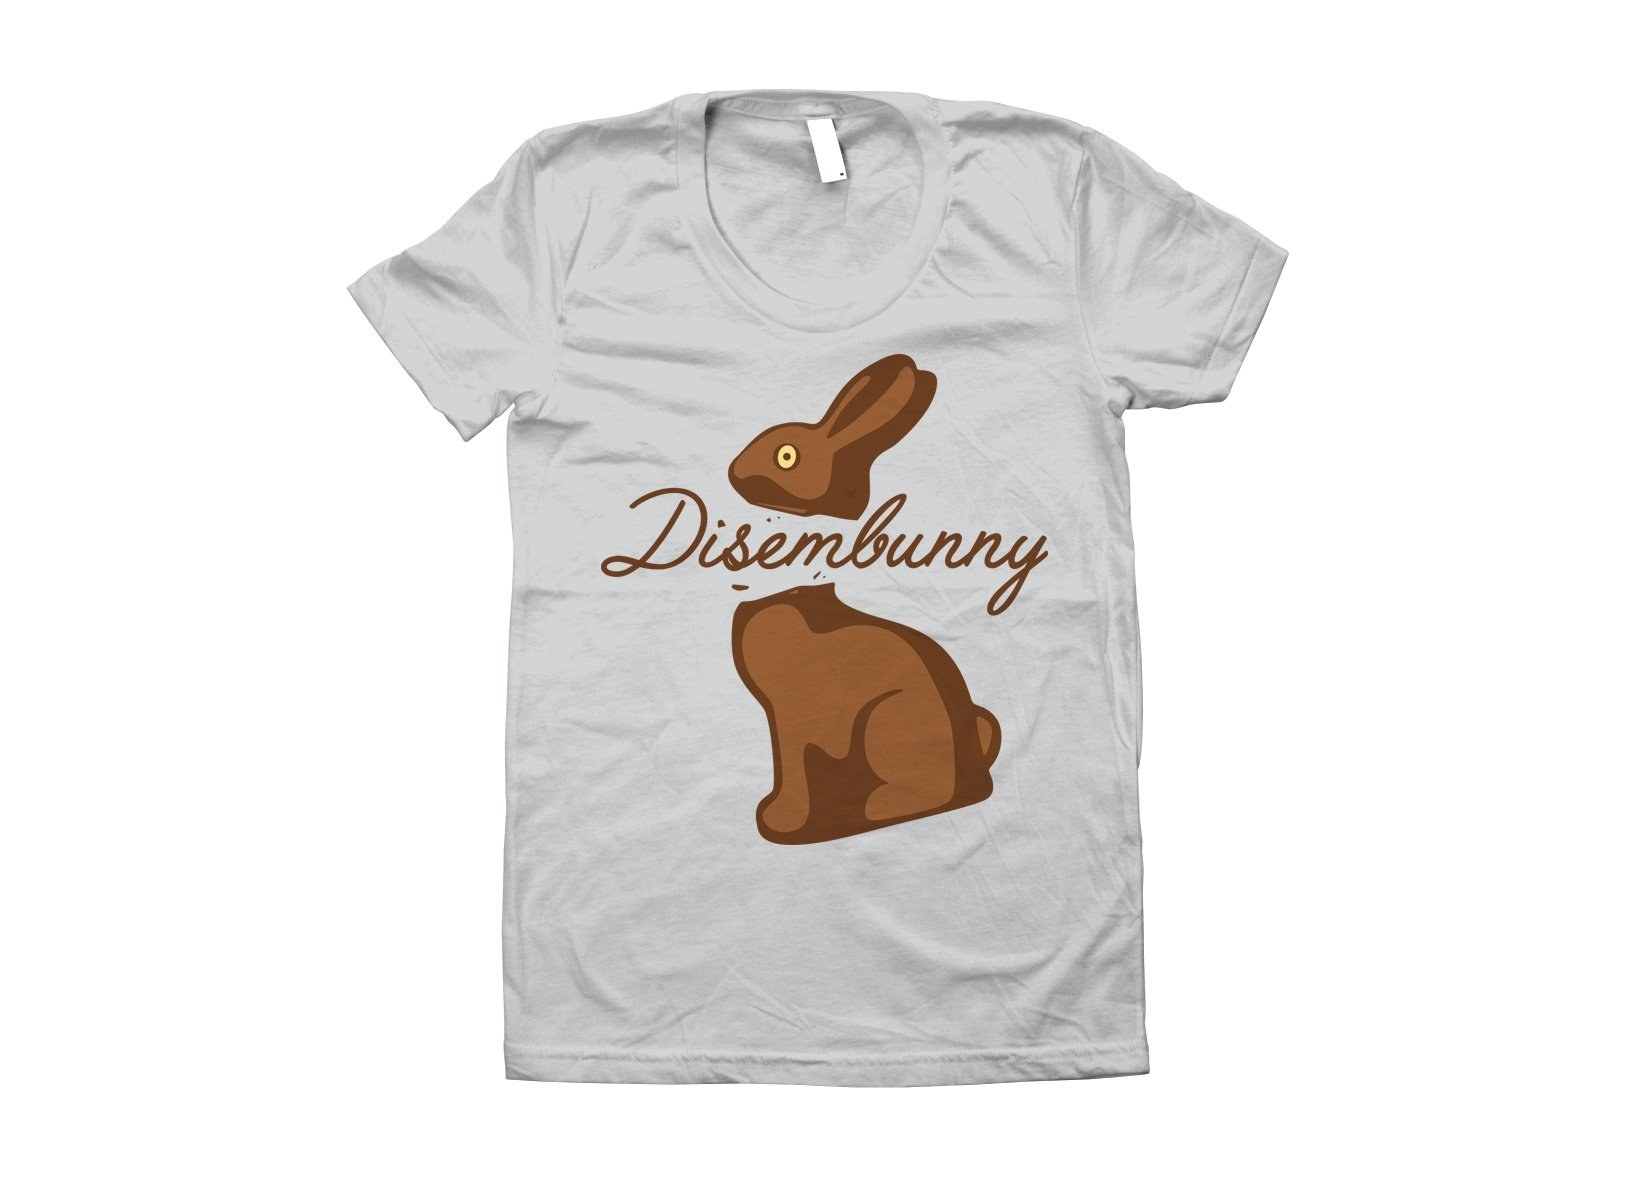 Disembunny on Juniors T-Shirt